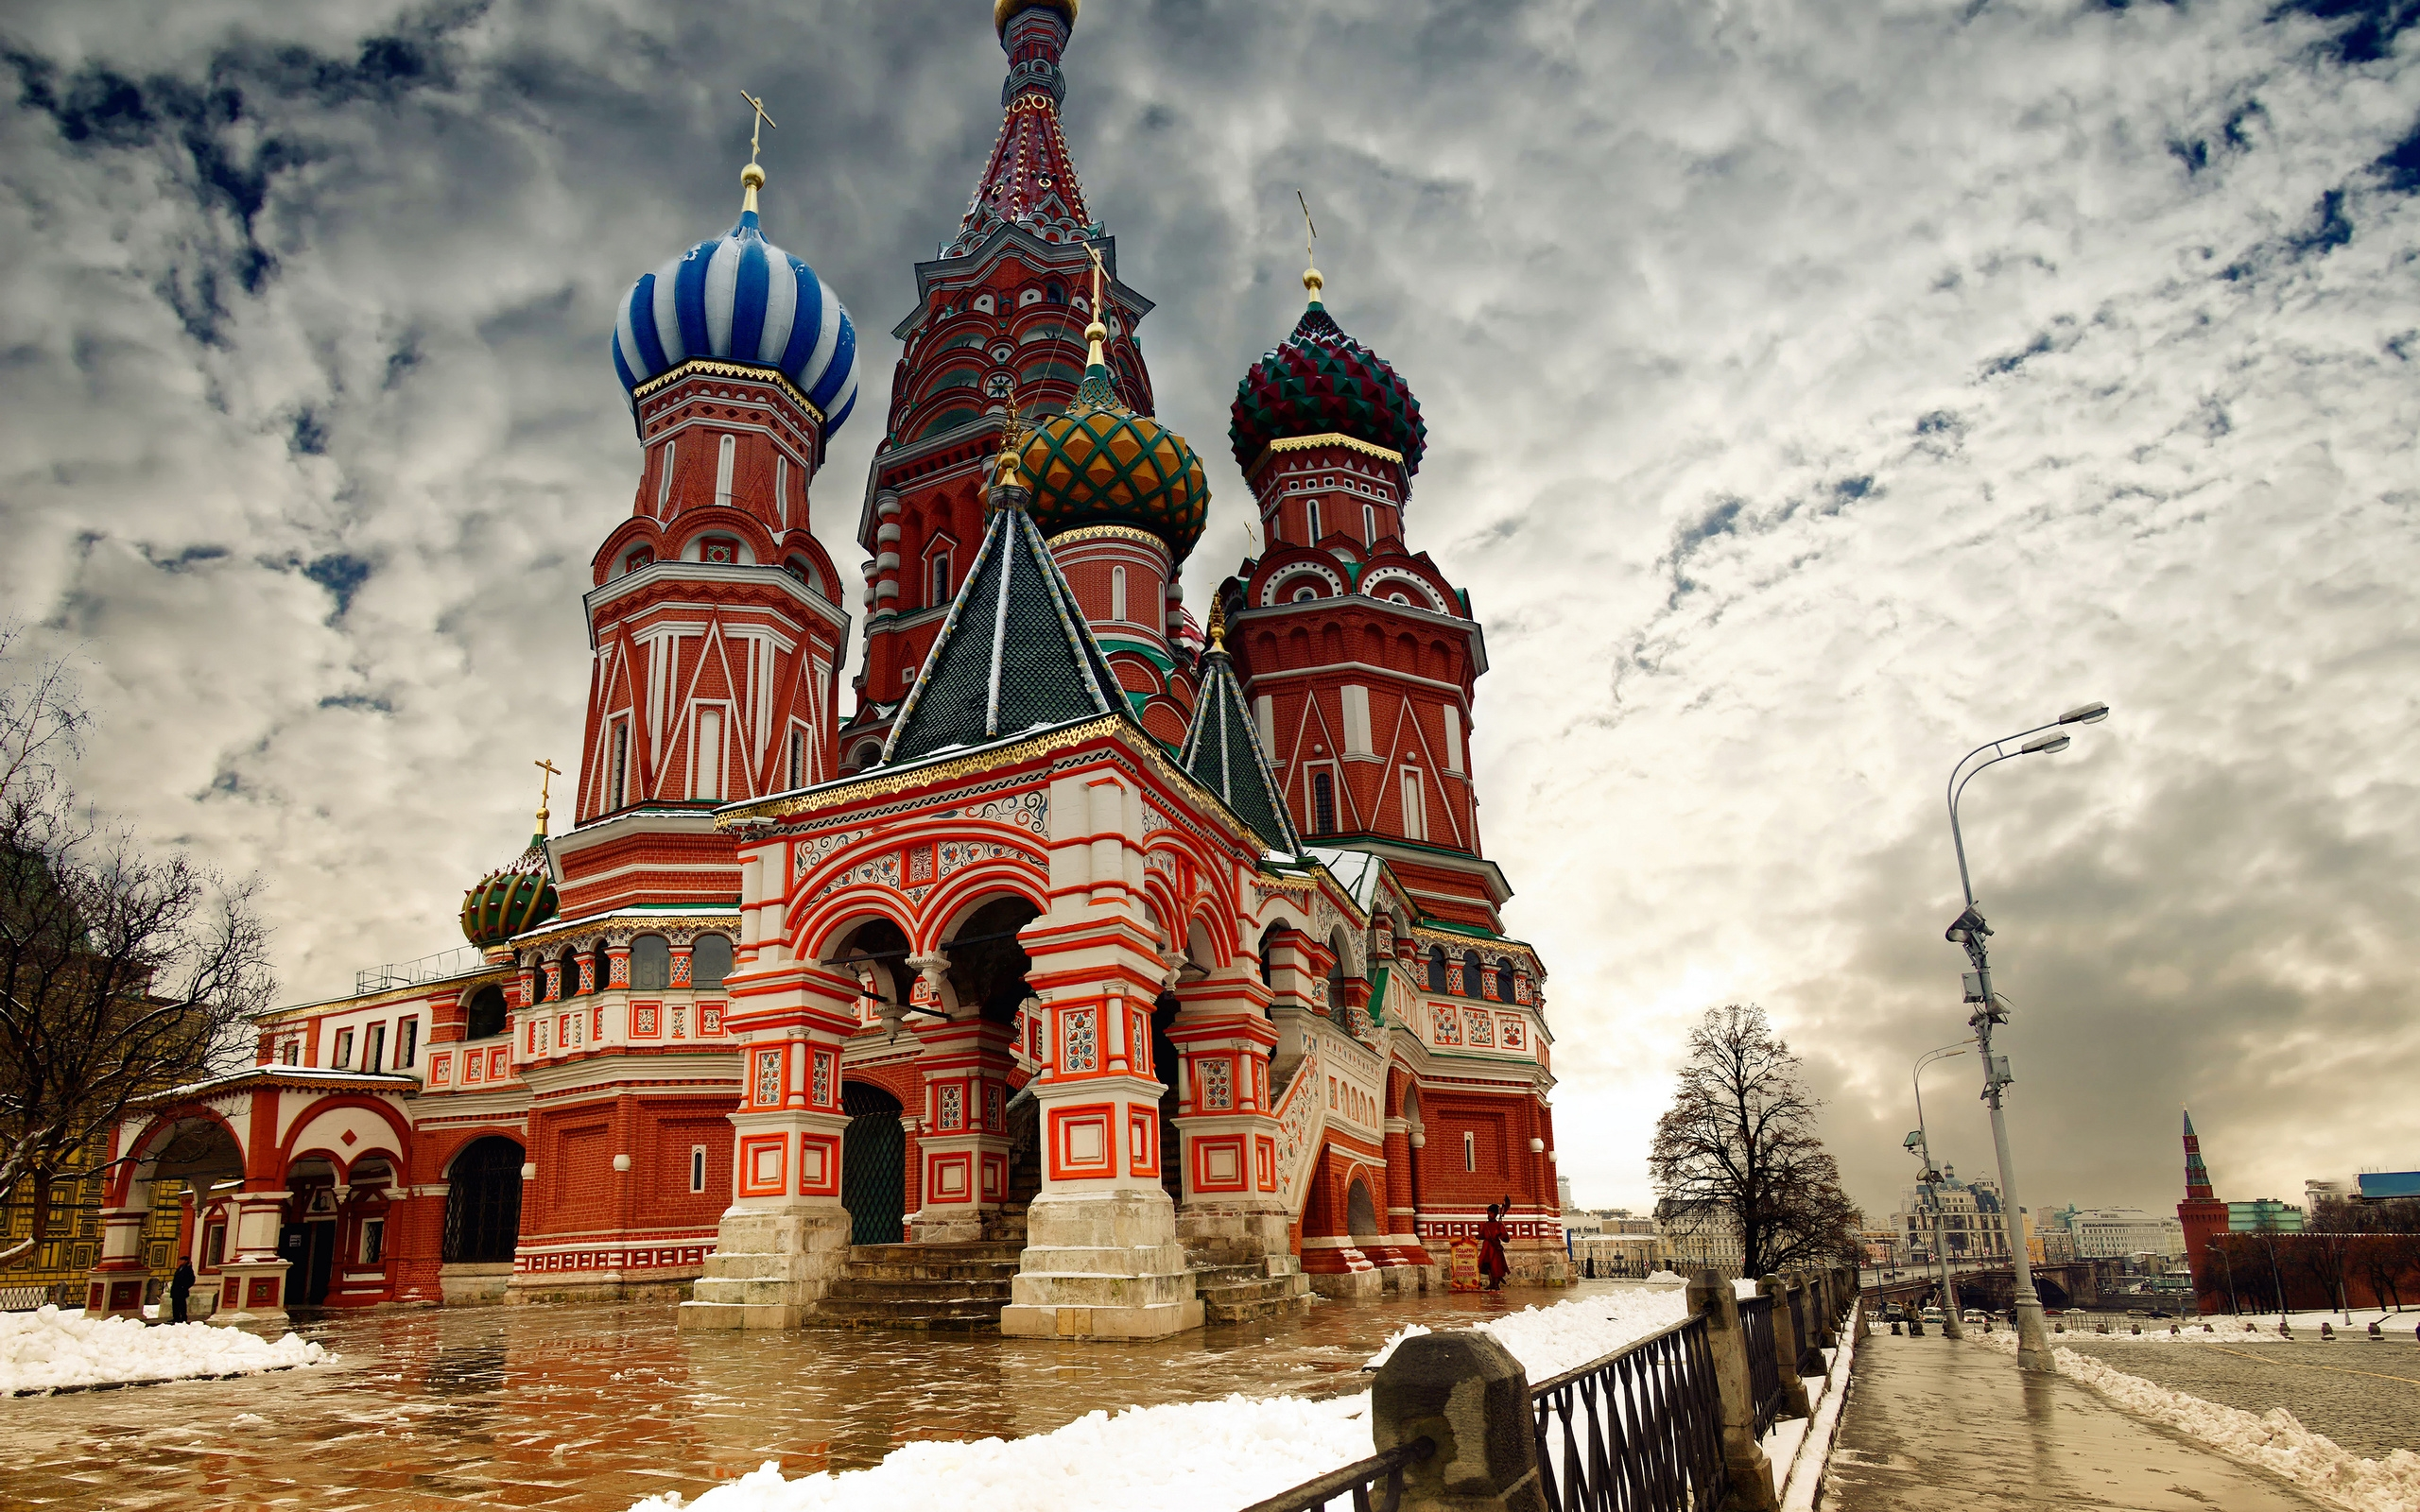 moscow_cloud_st_basils_cathedral_city_hdr_28626_2560x1600